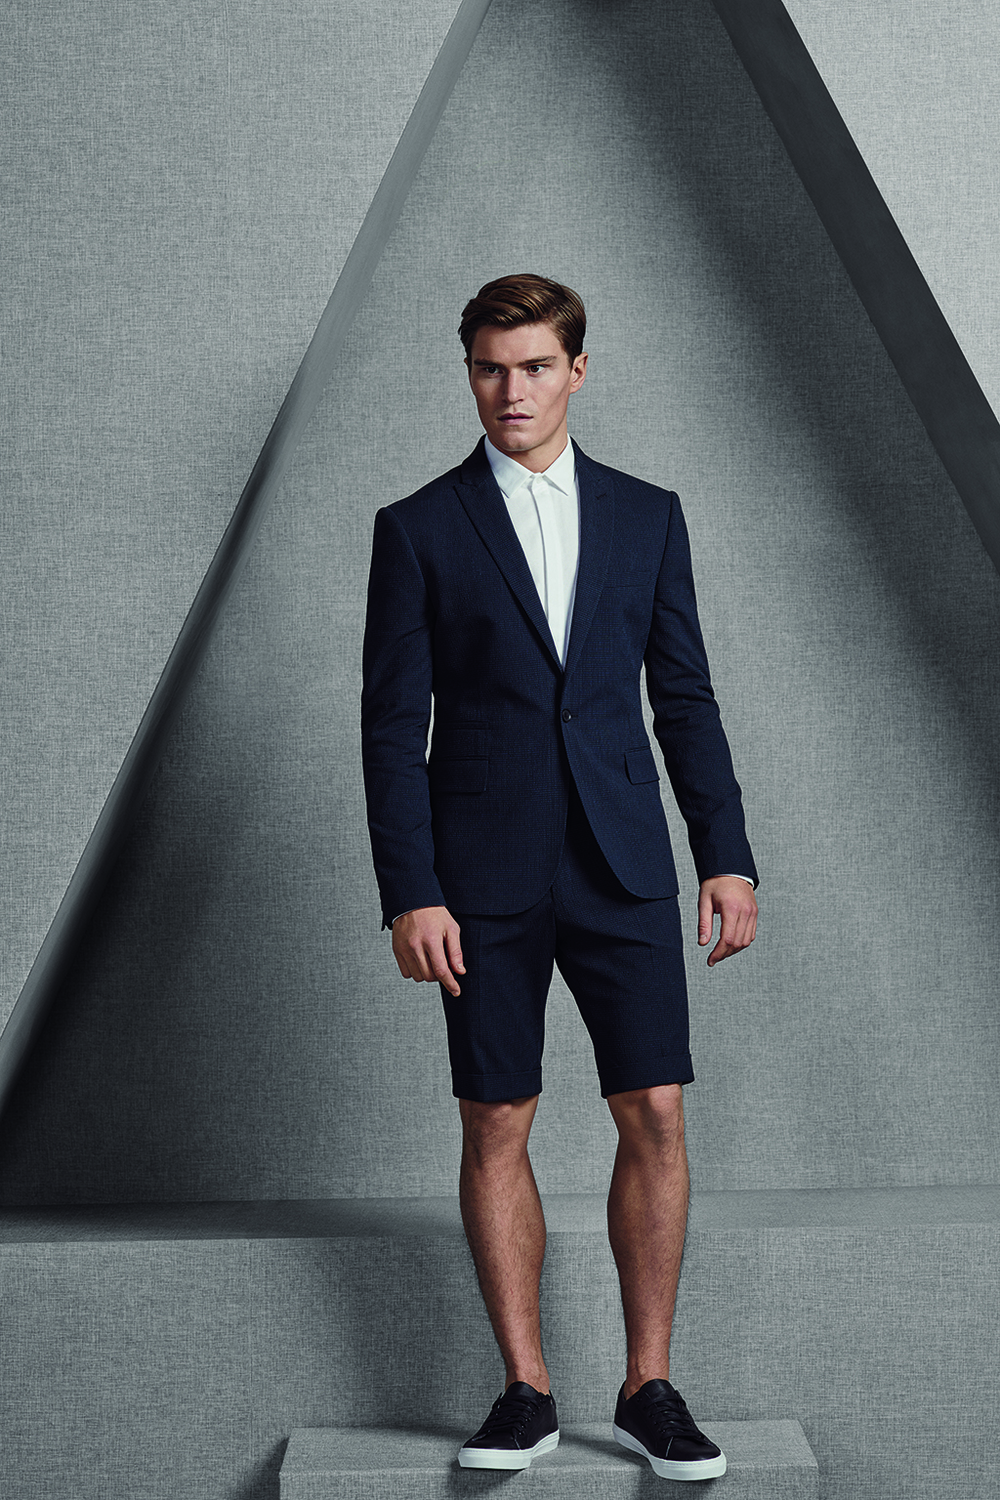 Oliver Cheshire | M&S Autograph | Sam Squire Uk male fashion blogger